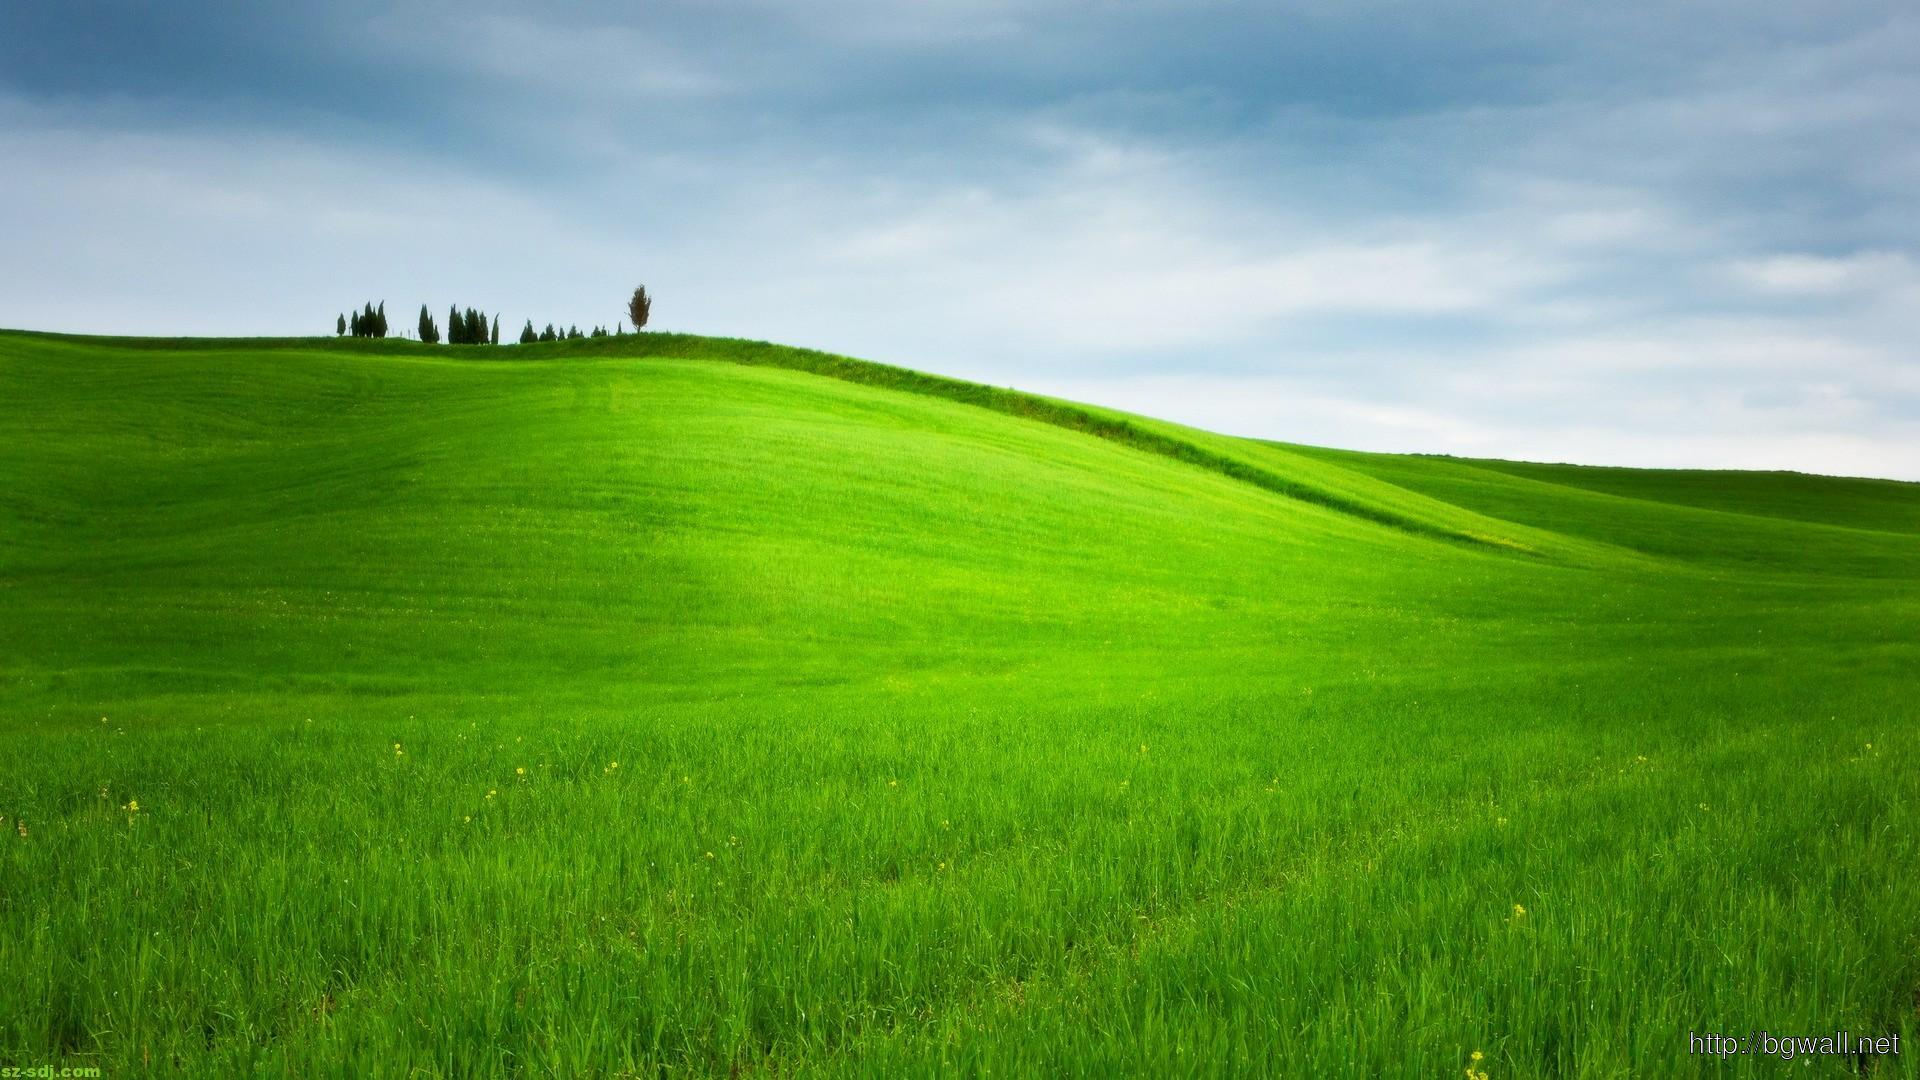 green hill wallpaper for desktop – background wallpaper hd